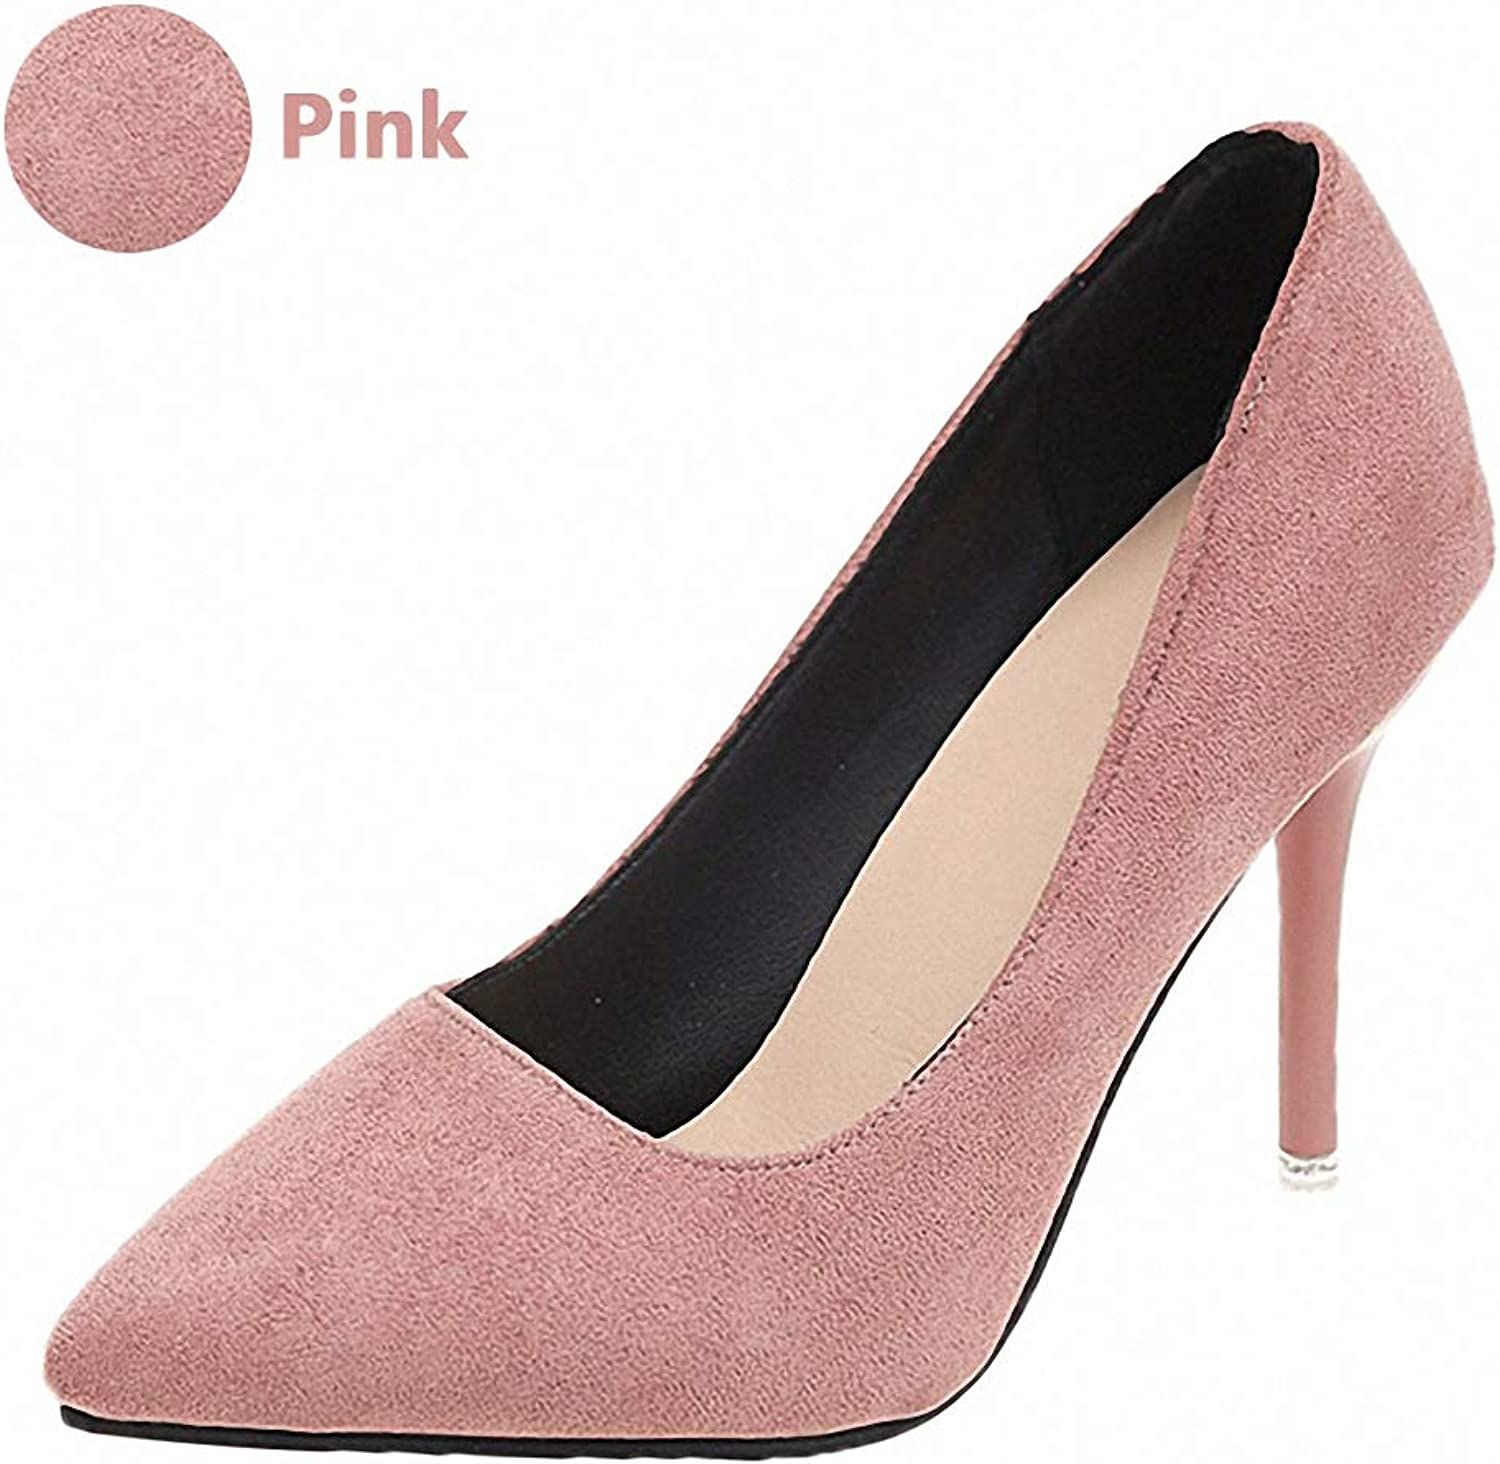 Tebapi Womens High-Heeled Pumps shoes Woman Super High Heels Pumps Nude 10cm Thin Heels Wedding shoes Party Ladies shoes Classic Pumps